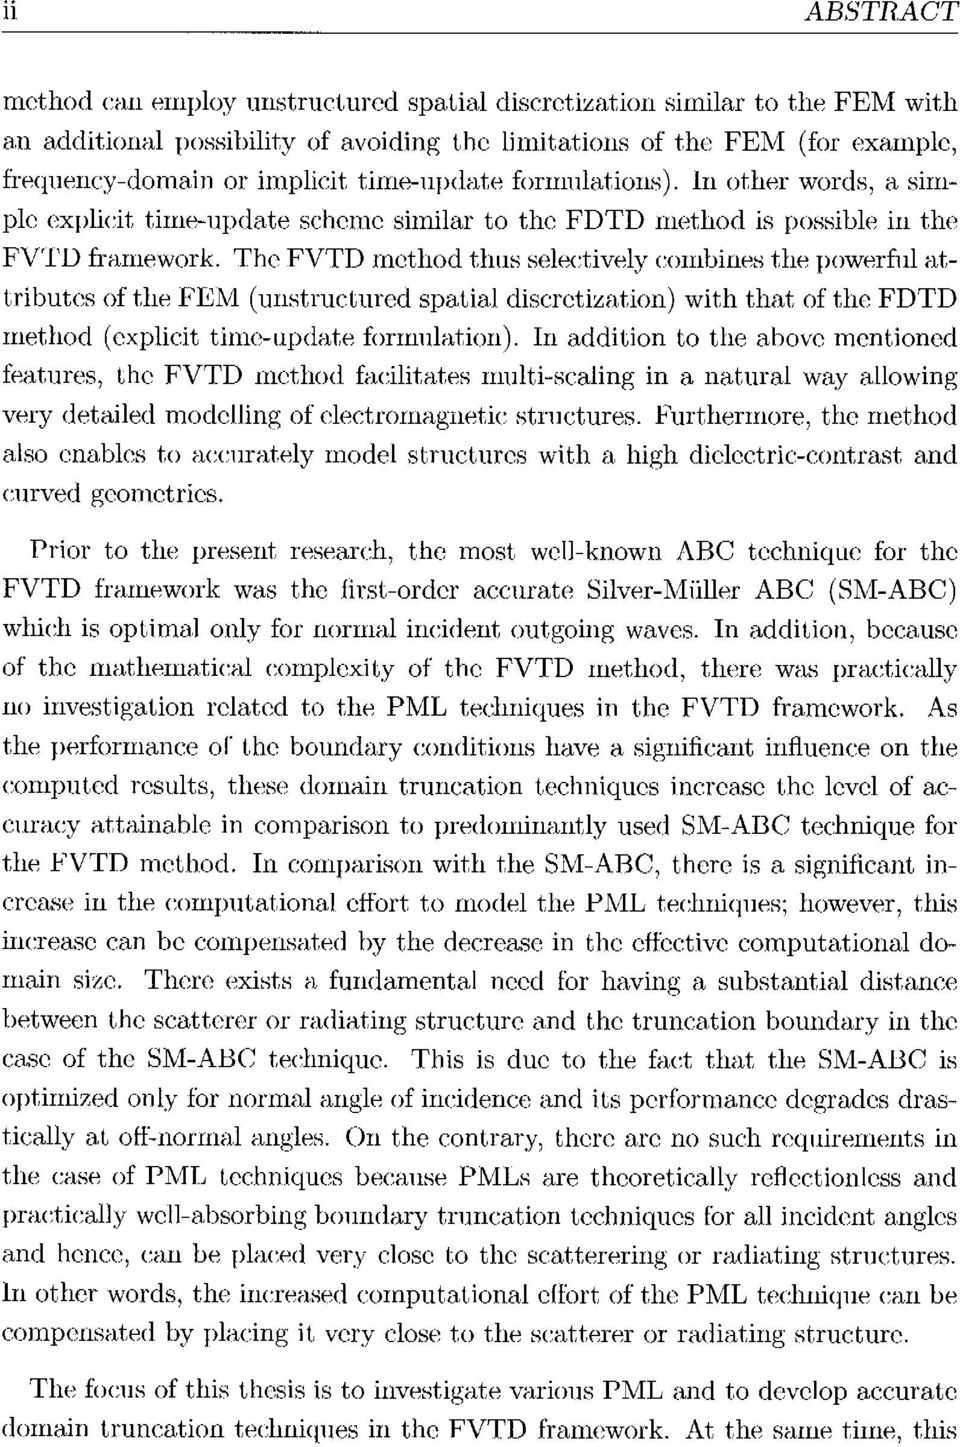 The FVTD method thus selectively combiiies the powerful at tributesof the FEM (unstructured spatiaj discretization) with that of the FDTD method (explicit time-update formulation).